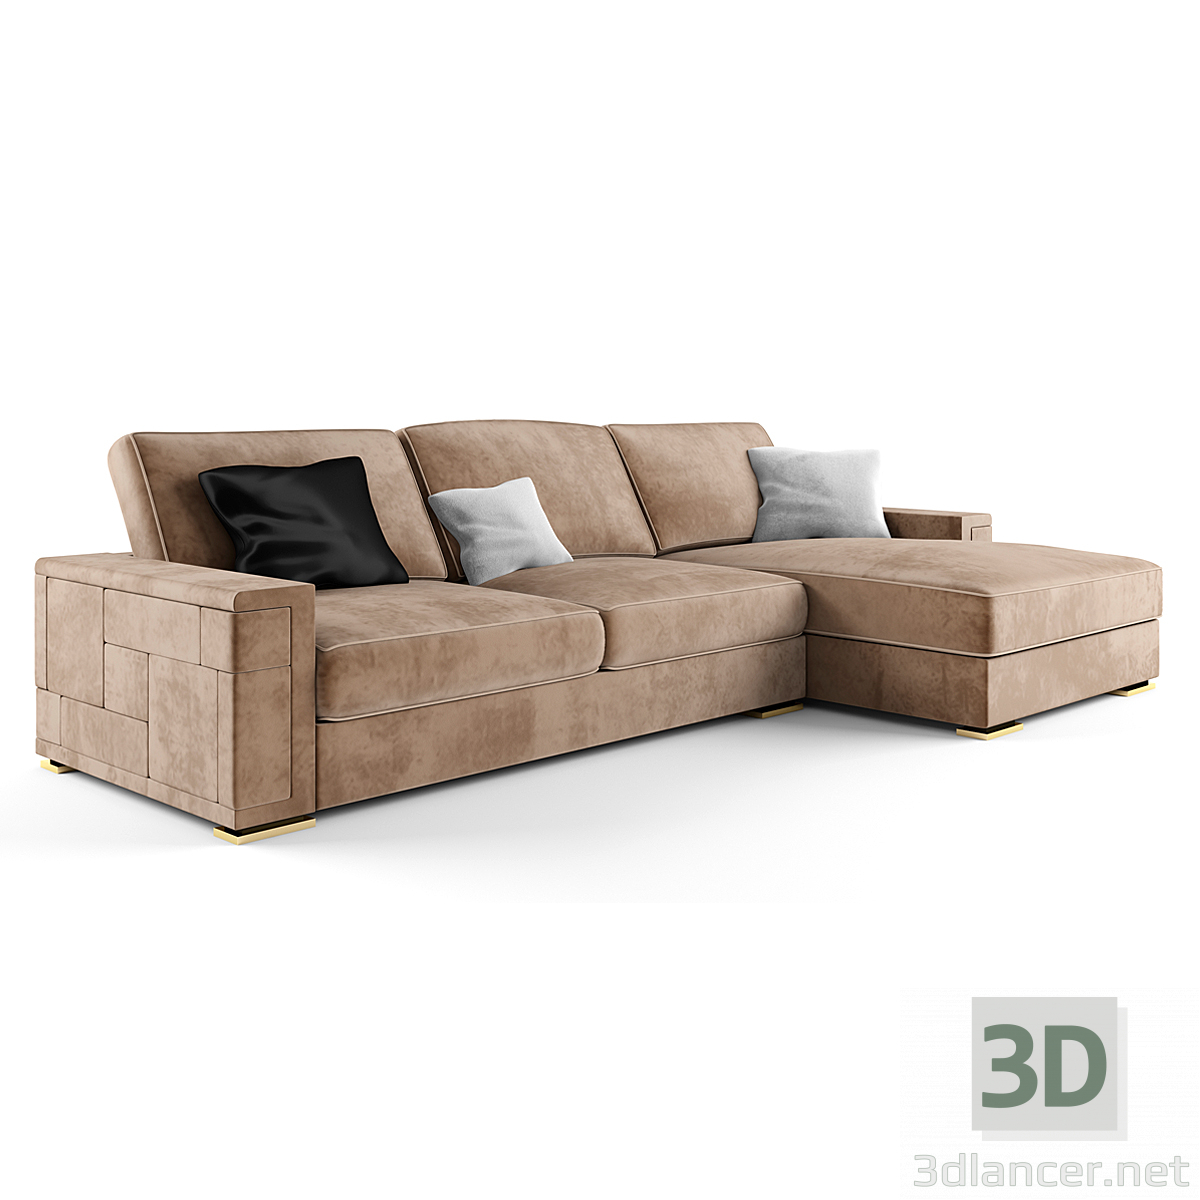 3d Asnaghi Pixel Sofa (Italy) model buy - render